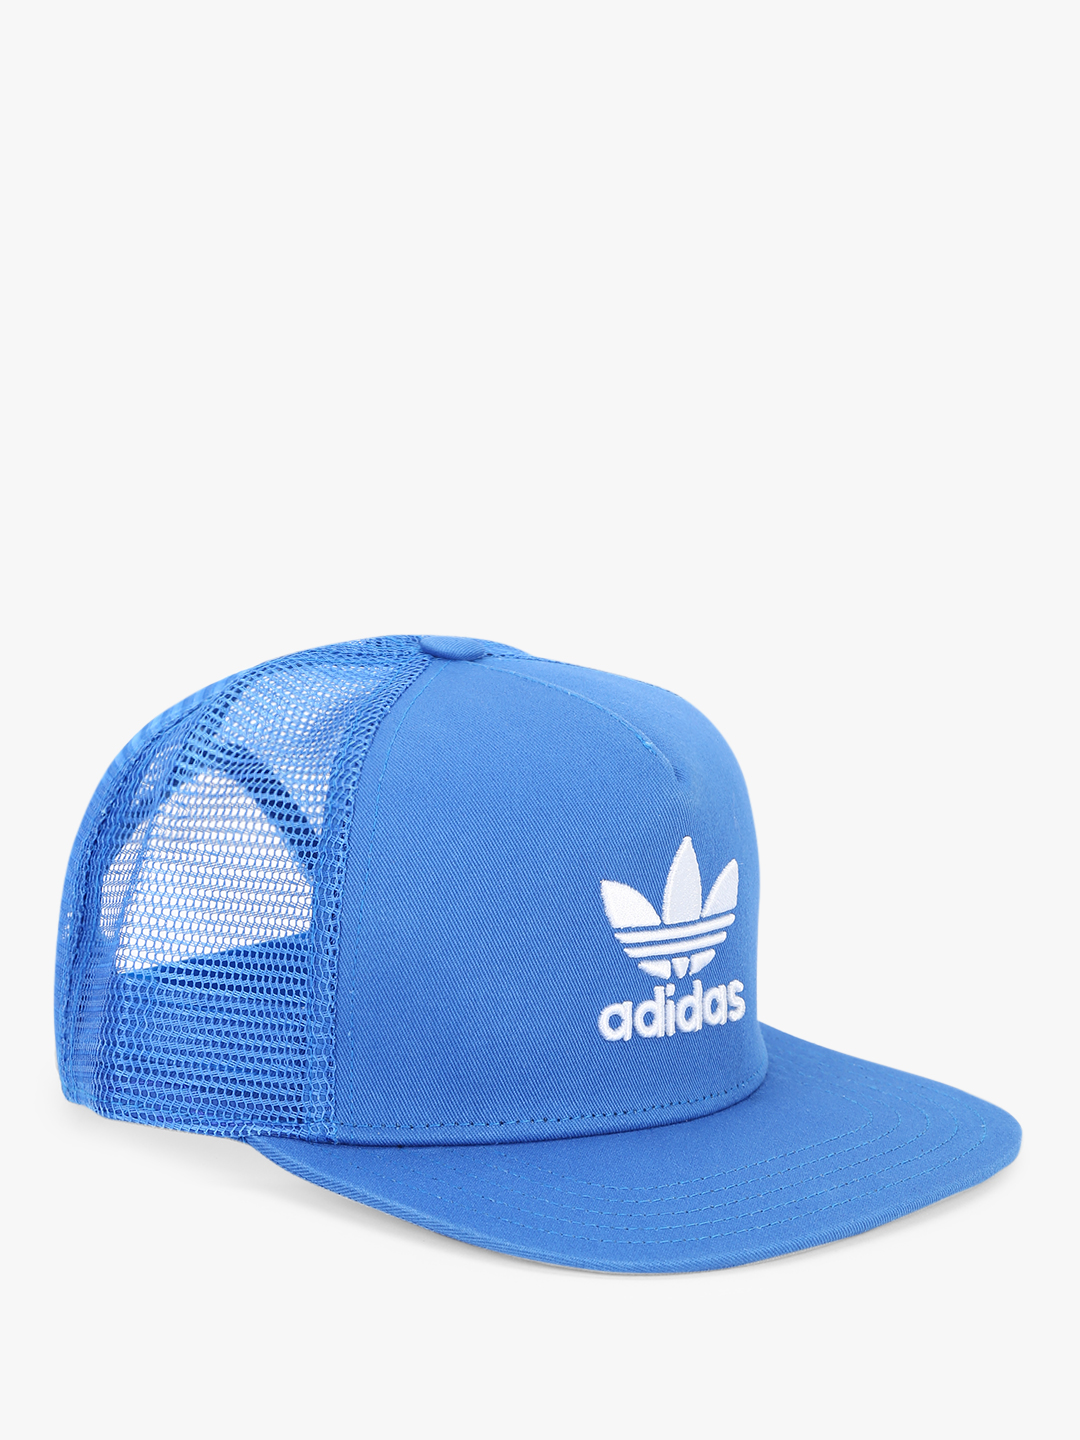 Adidas Originals Blue Trefoil Trucker Cap 1